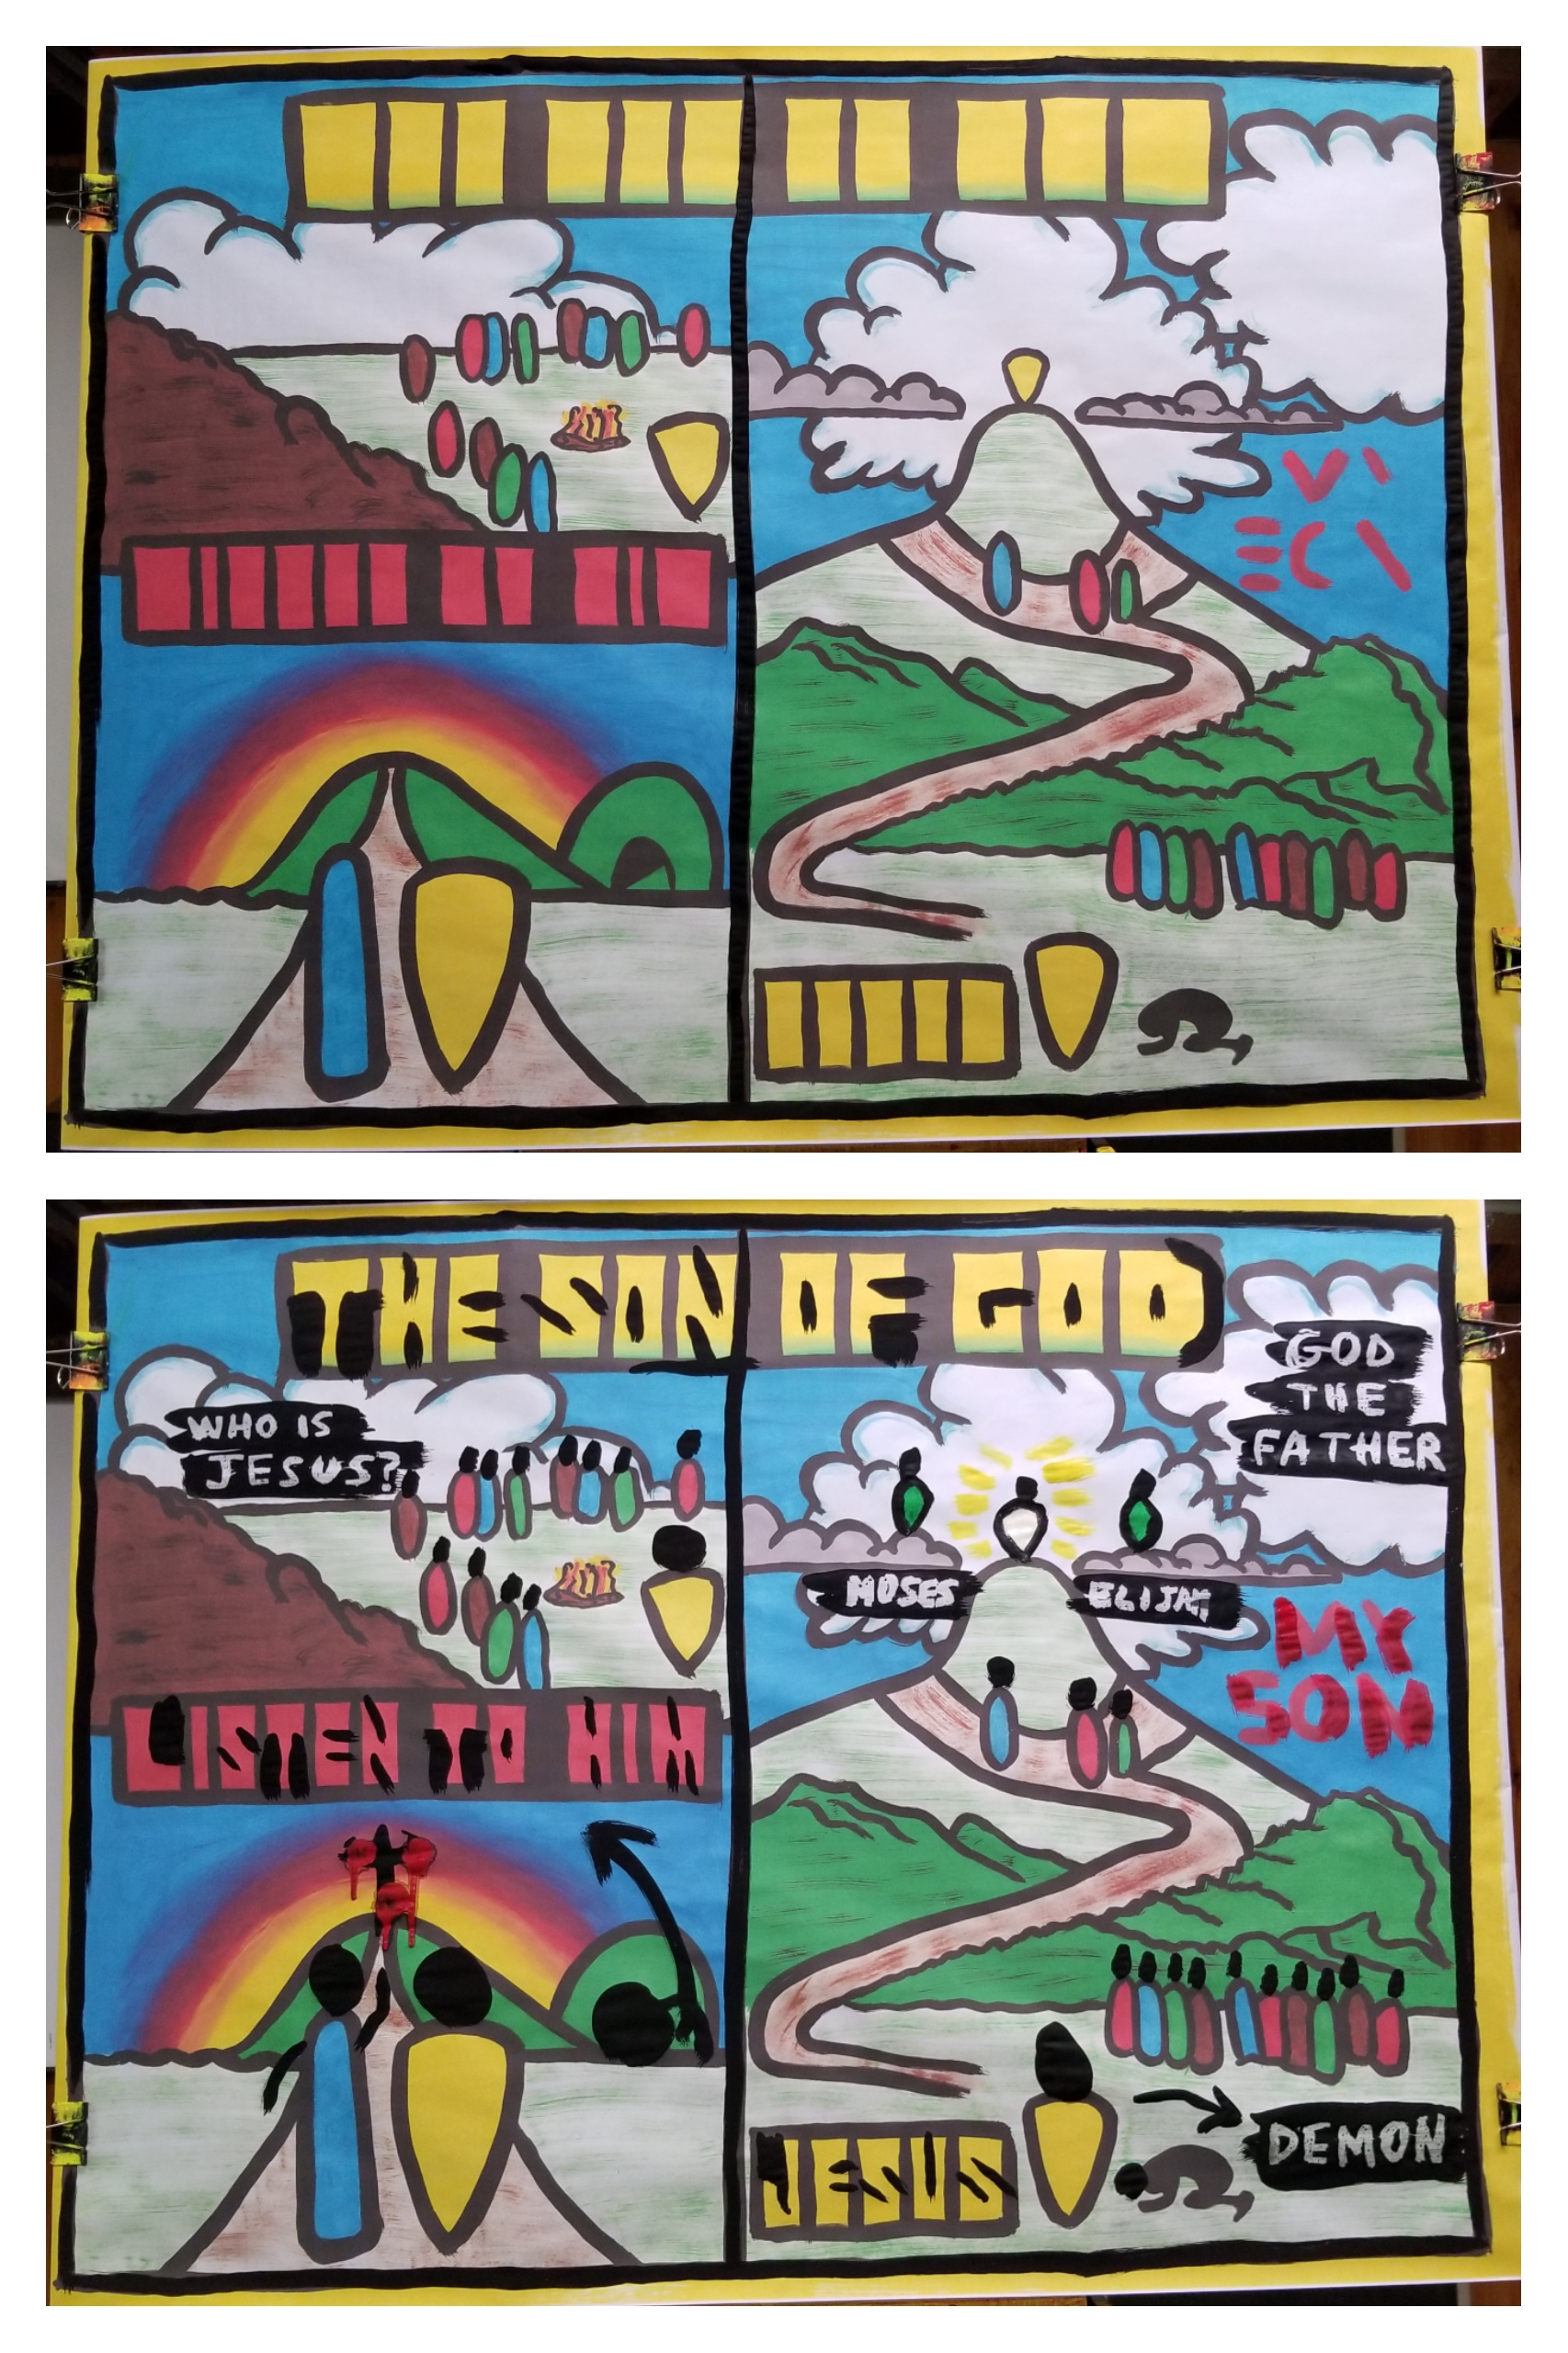 Here's the BEFORE and AFTER of the painting of the first message from this series. We learned what it means that Jesus is 'THE SON OF GOD.' Jesus prophesied His own death. He accurately predicted the manner of His death, the city, and the time. He could do this because He's 'The Son of God.' Then Jesus was transfigured. God the Father Himself declared Jesus to be 'The Son of God.' Jesus also performed miracles. Specifically, He exorcised a demon. Jesus had control over all nature because He is 'The Son of God.'